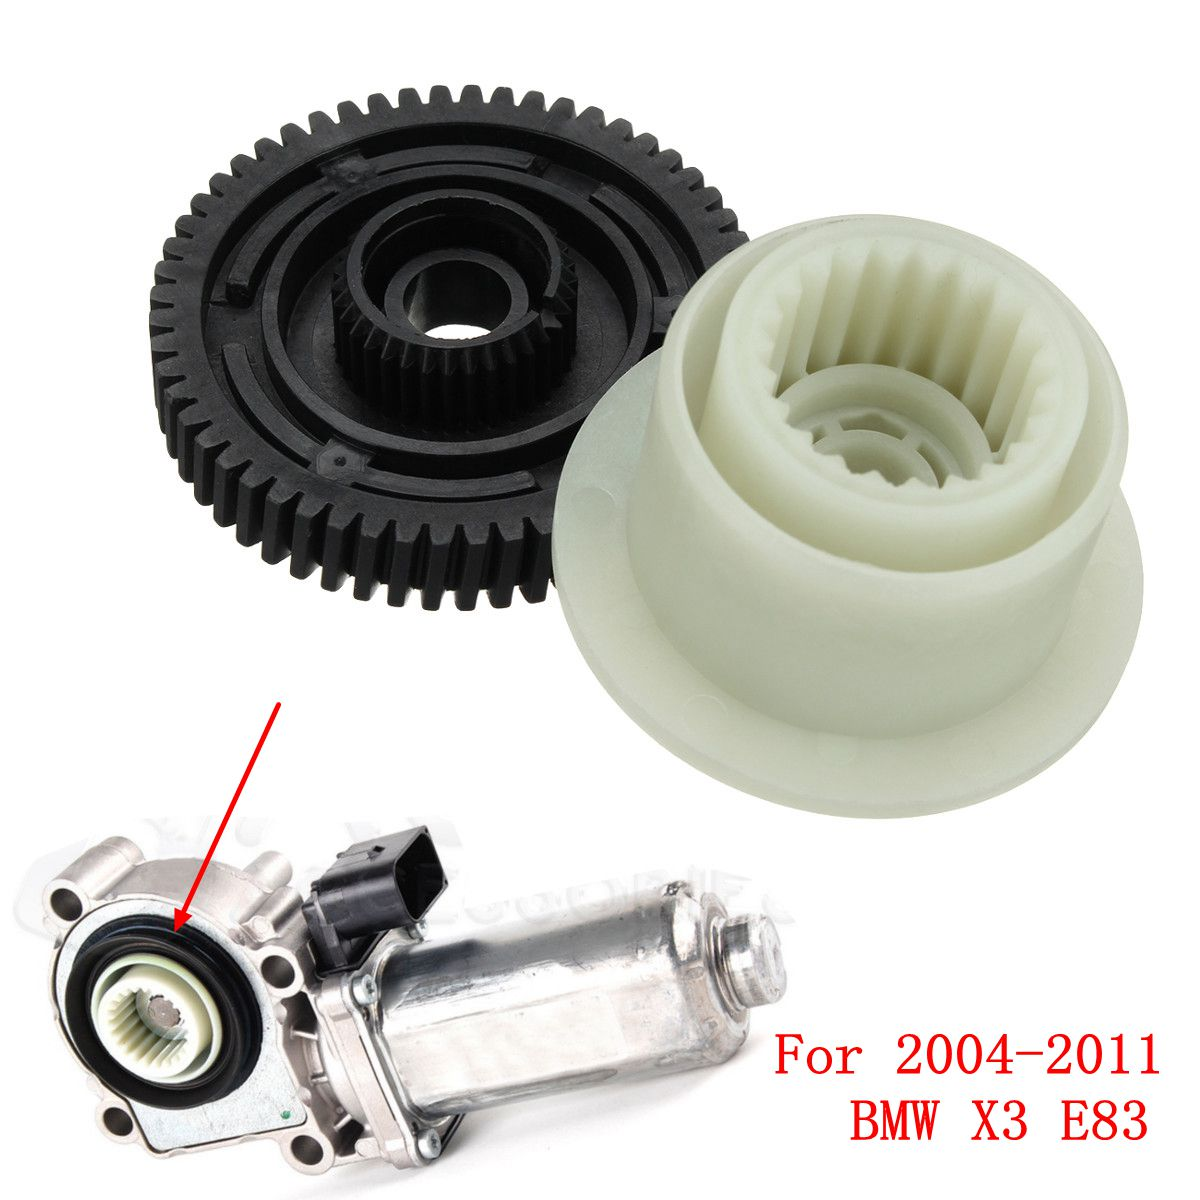 2Pcs Gear Box Transfer Case Servo Actuator Motor Repair Kit For <font><b>BMW</b></font> X3 E83 2004-2011 image